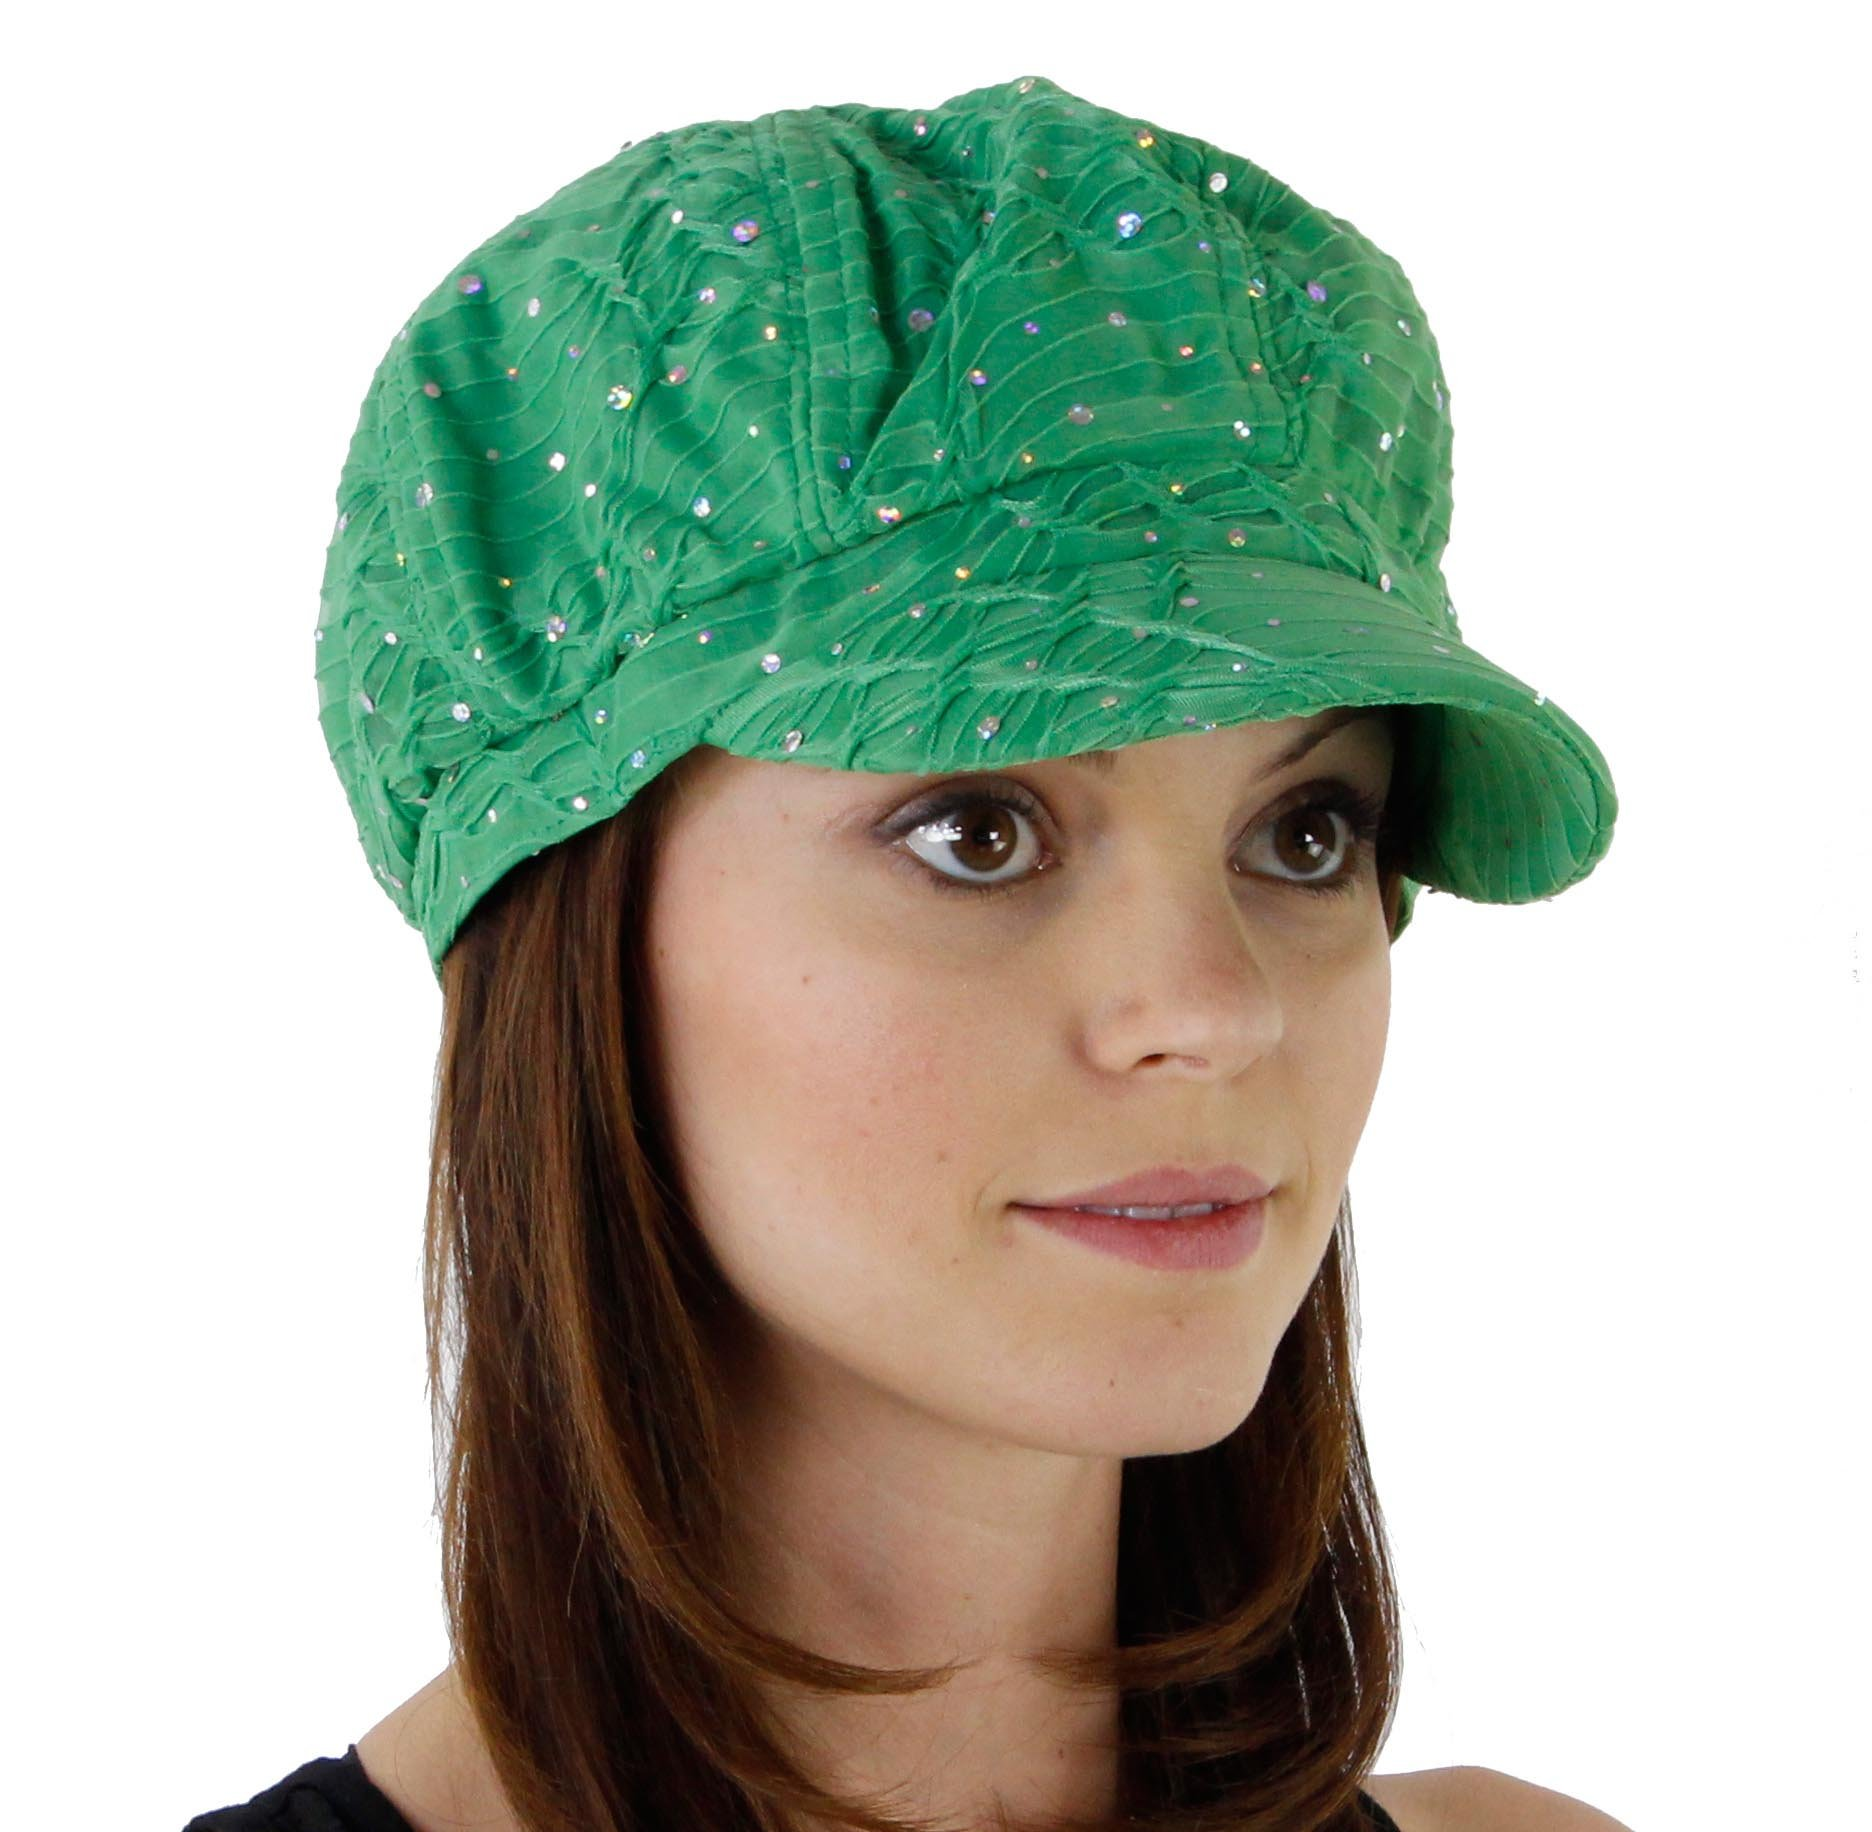 Greatlookz Fashion Glitter Sequin Trim Newsboy Style Relaxed Fit Cap, Green